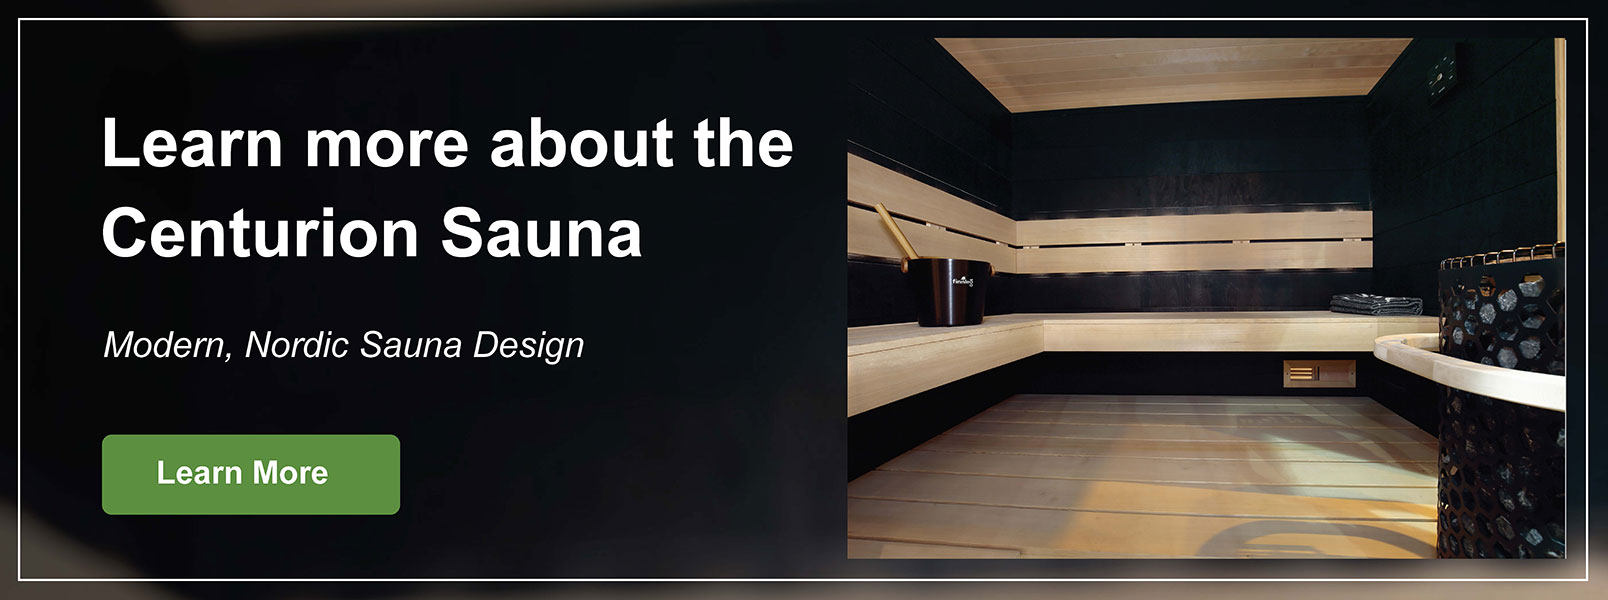 Learn More about the Centurion Sauna